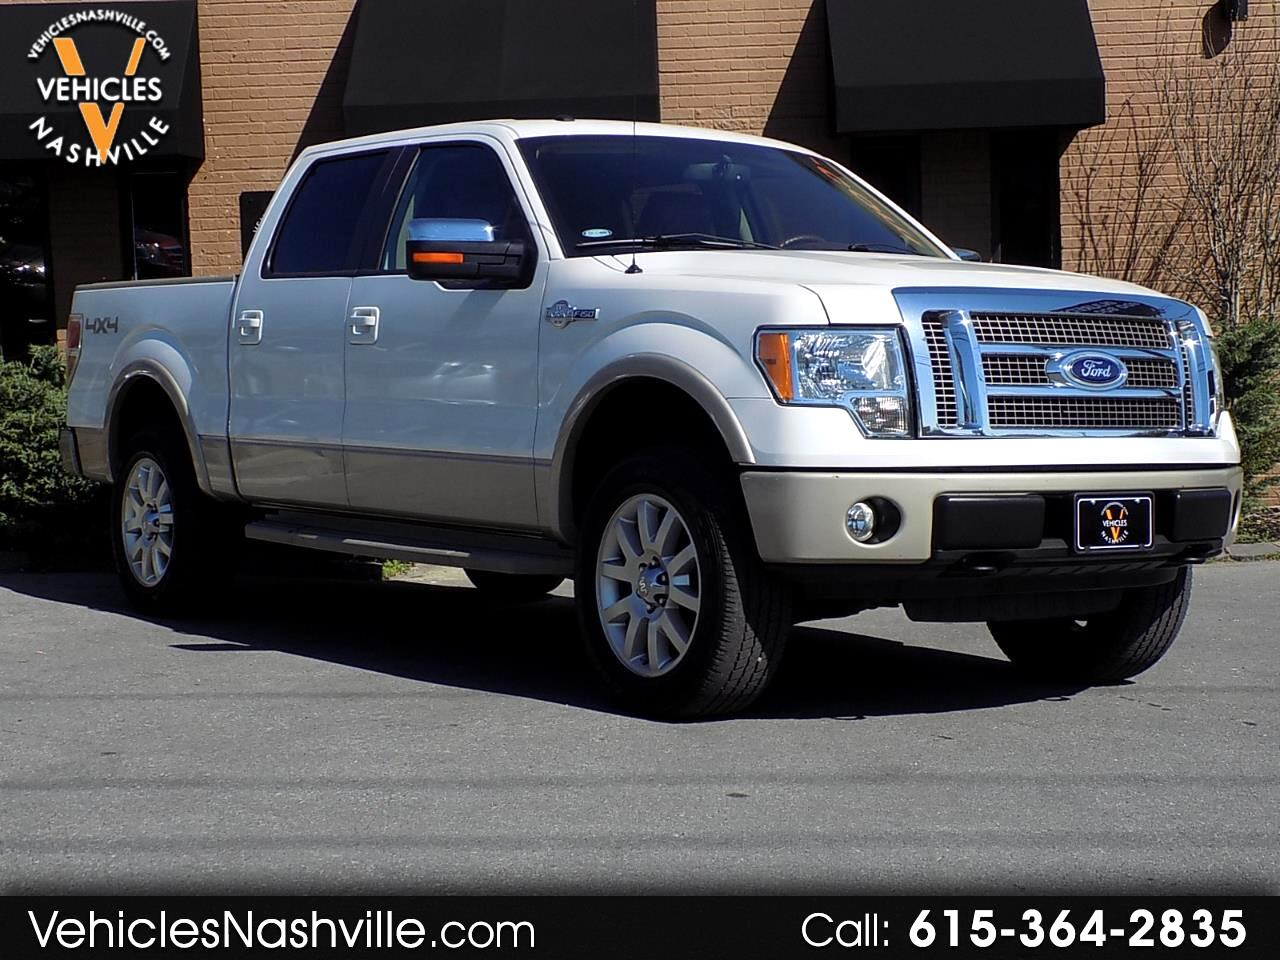 2010 Ford F-150 King Ranch Super Crew 4x4